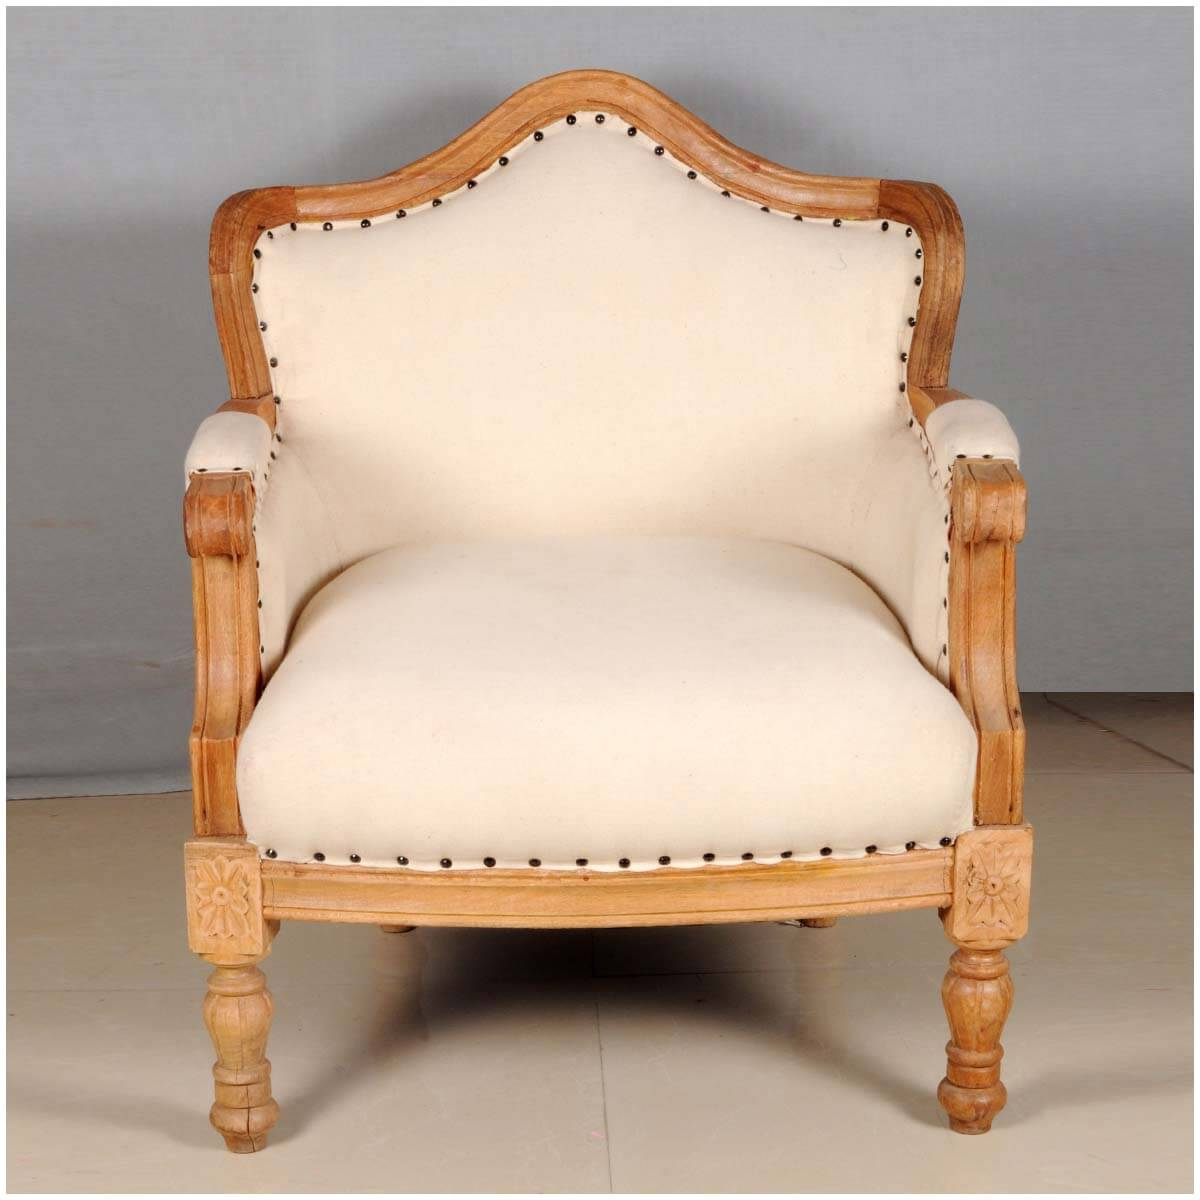 Overstuffed Chair Colonial Federal Mango Wood Upholstered Overstuffed Arm Chair